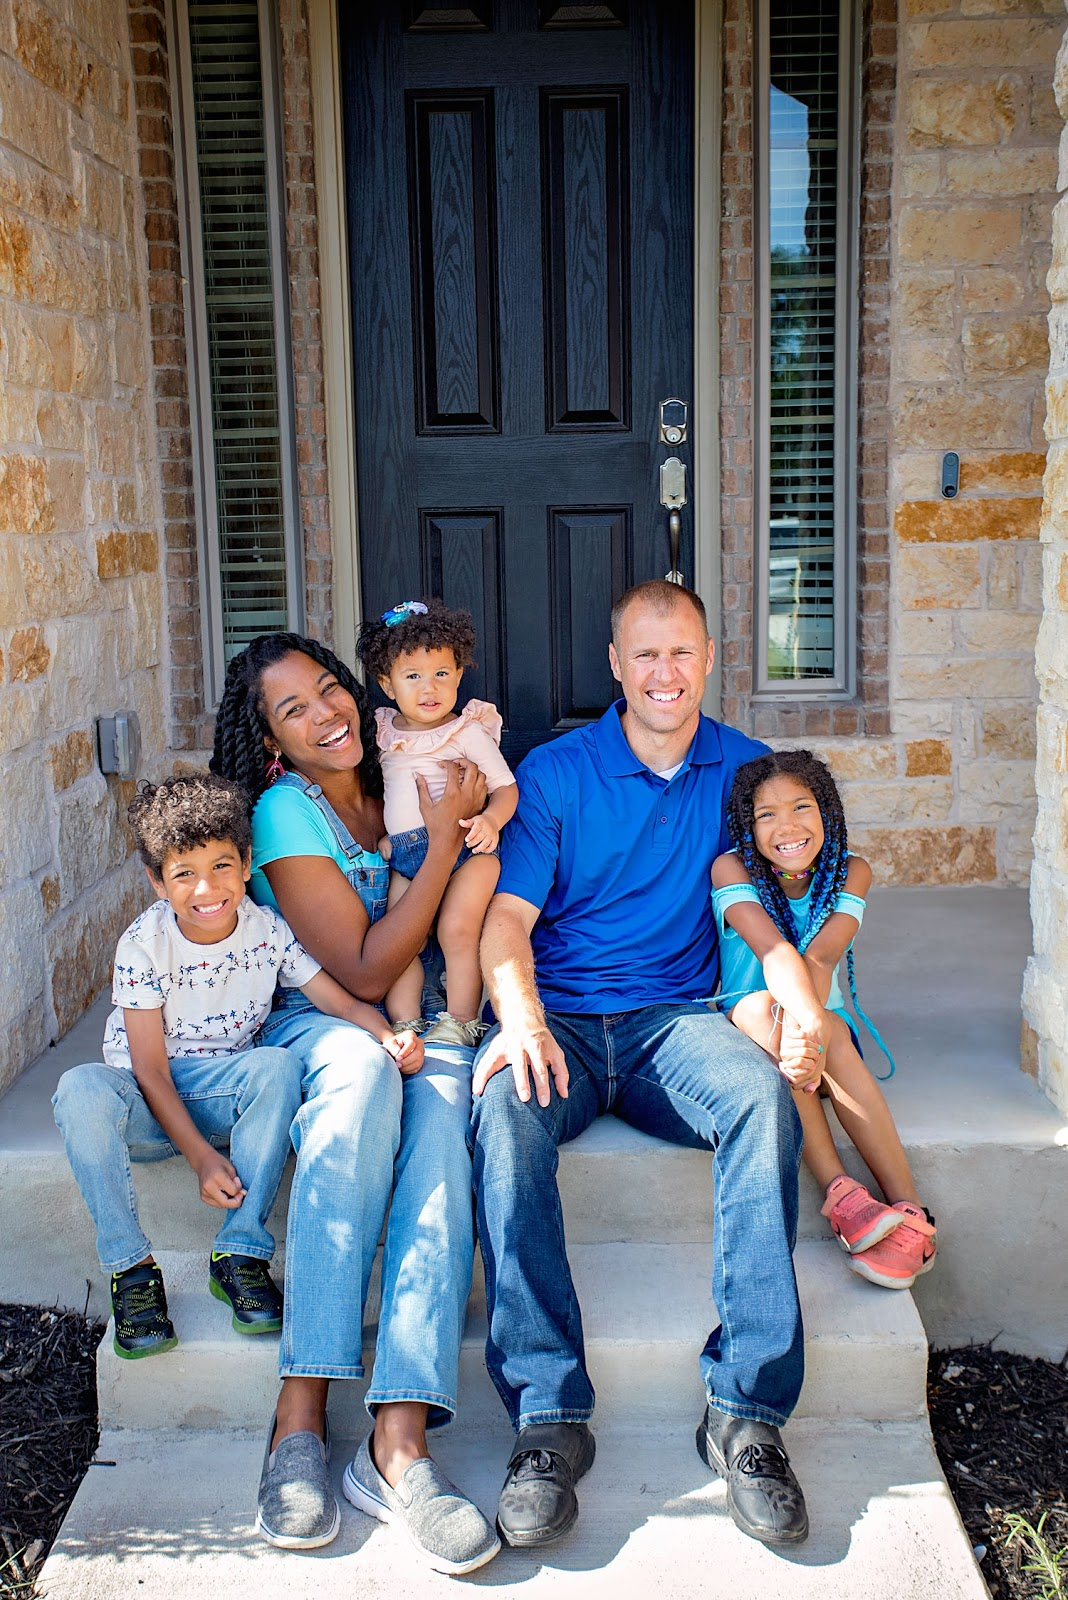 Interracial family of 5. How to avoid college debt.